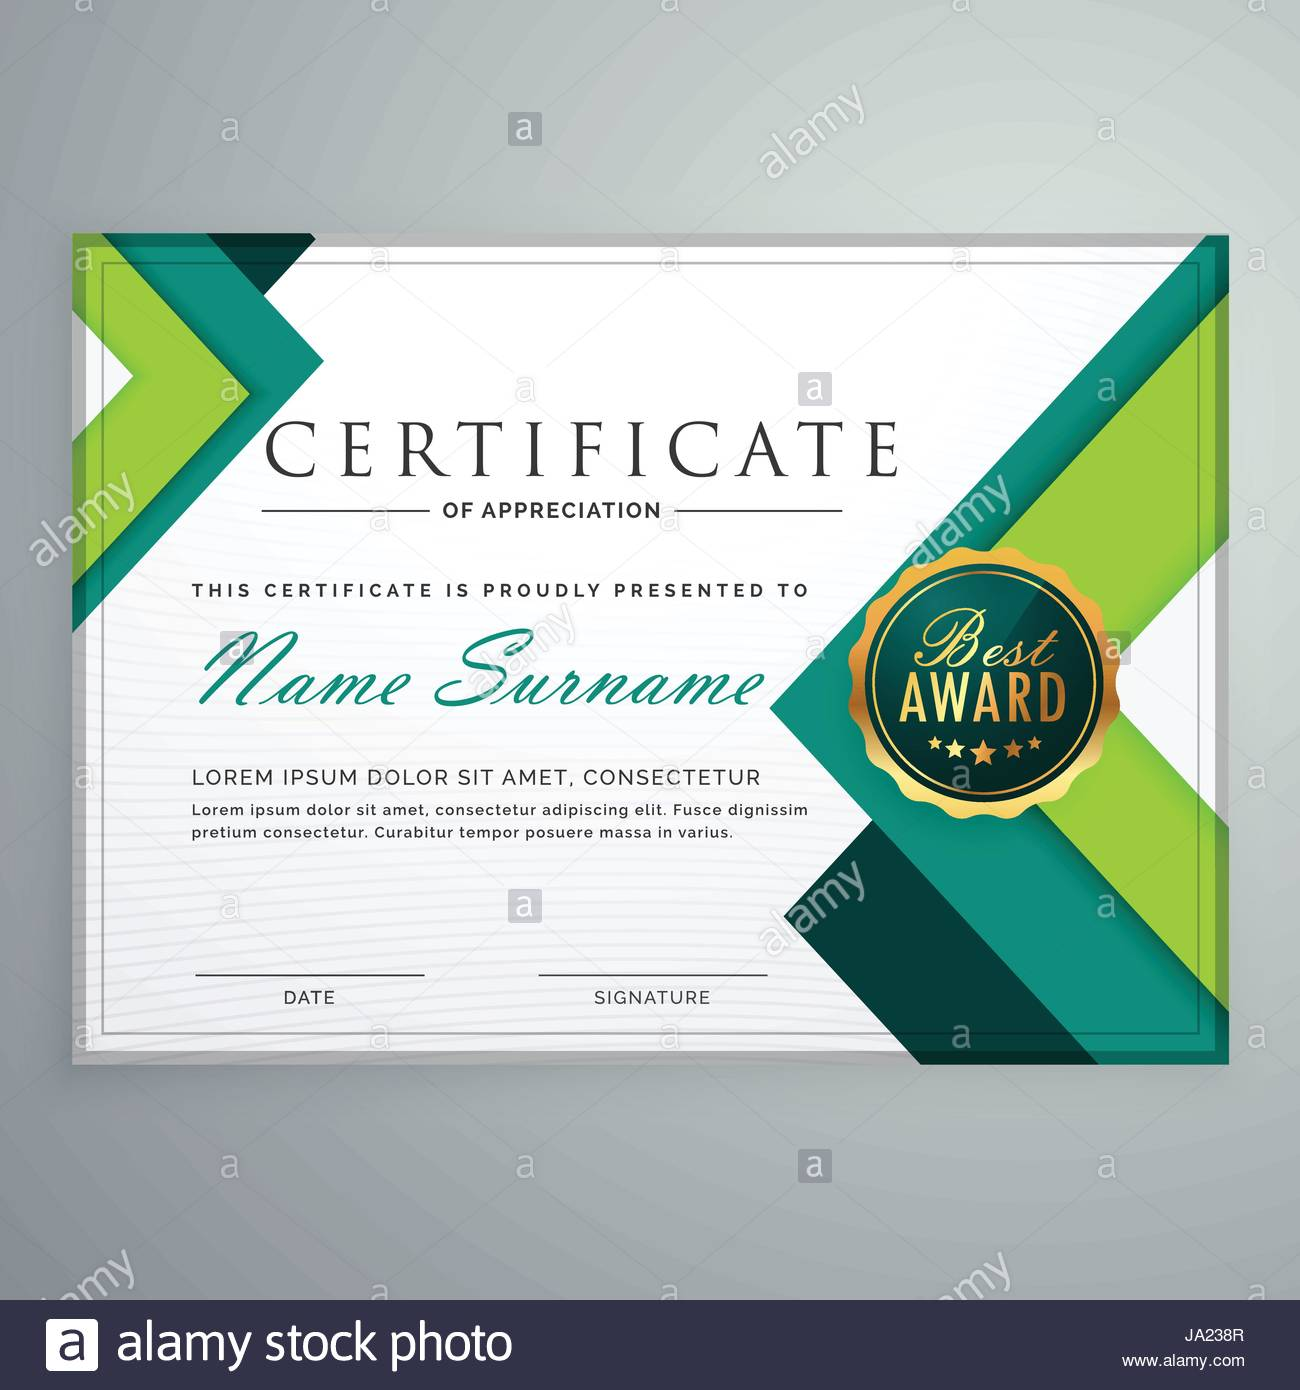 Modern Geometric Shape Certificate Design Template Stock Vector Art Illustration Vector Image